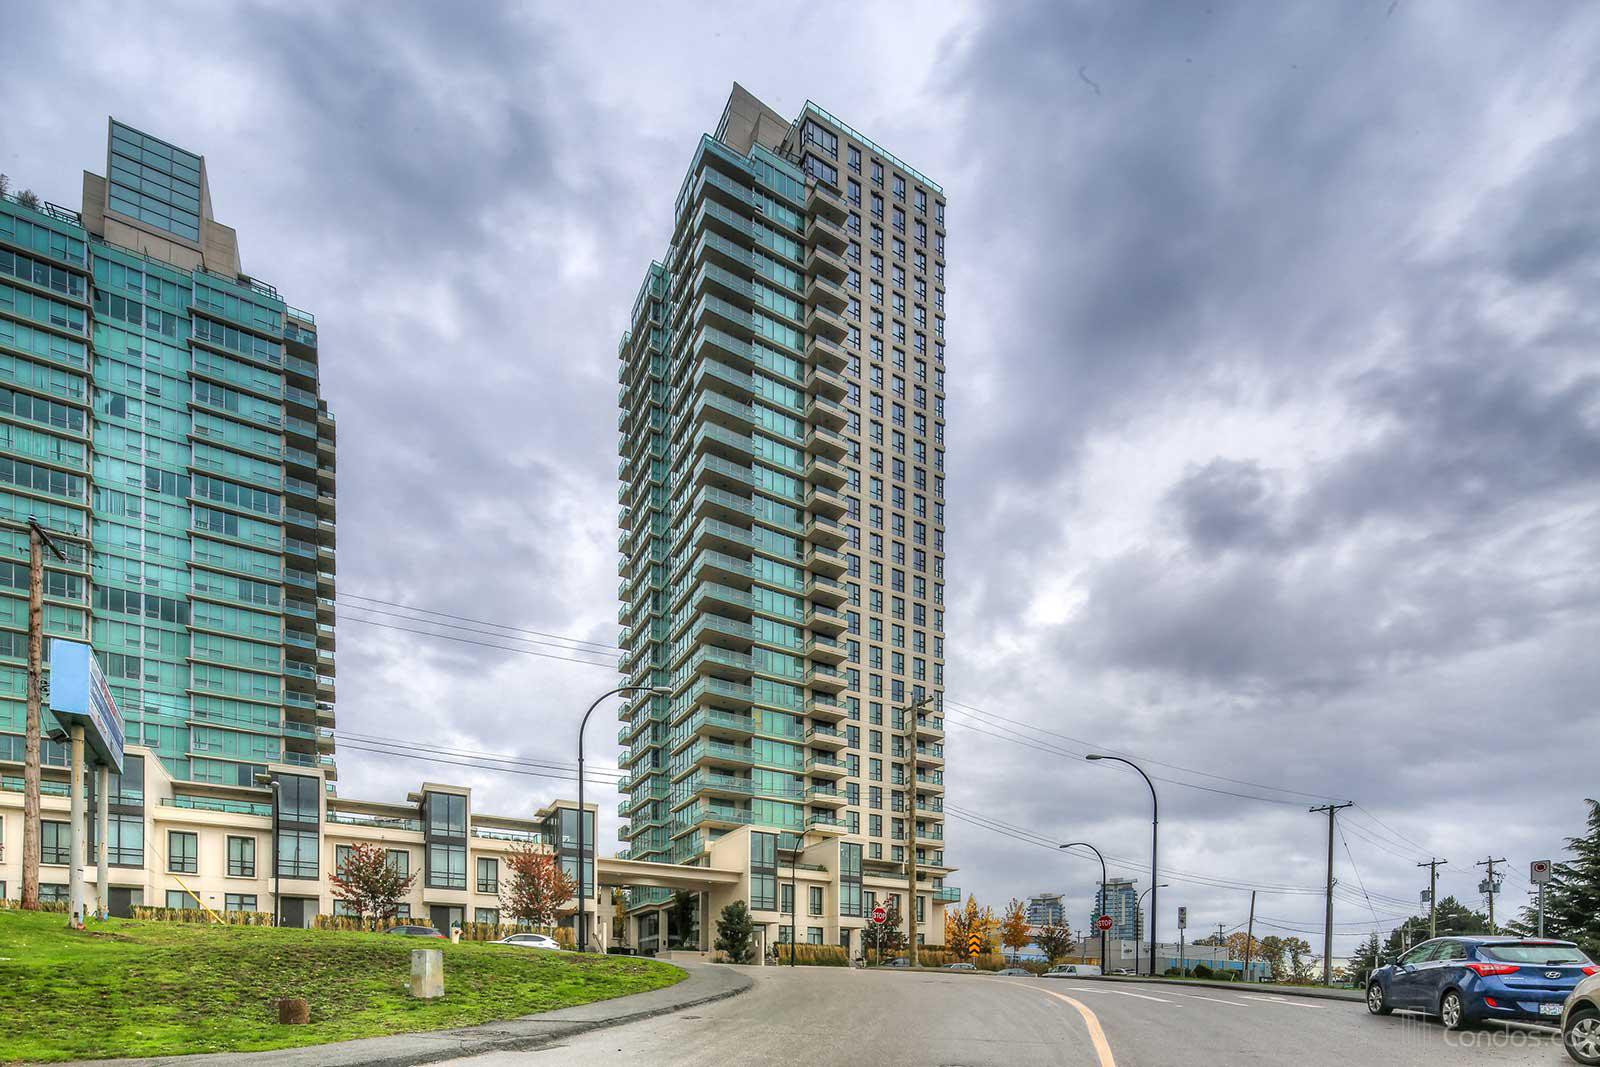 Affinity at 2200 Douglas Rd, Burnaby 1